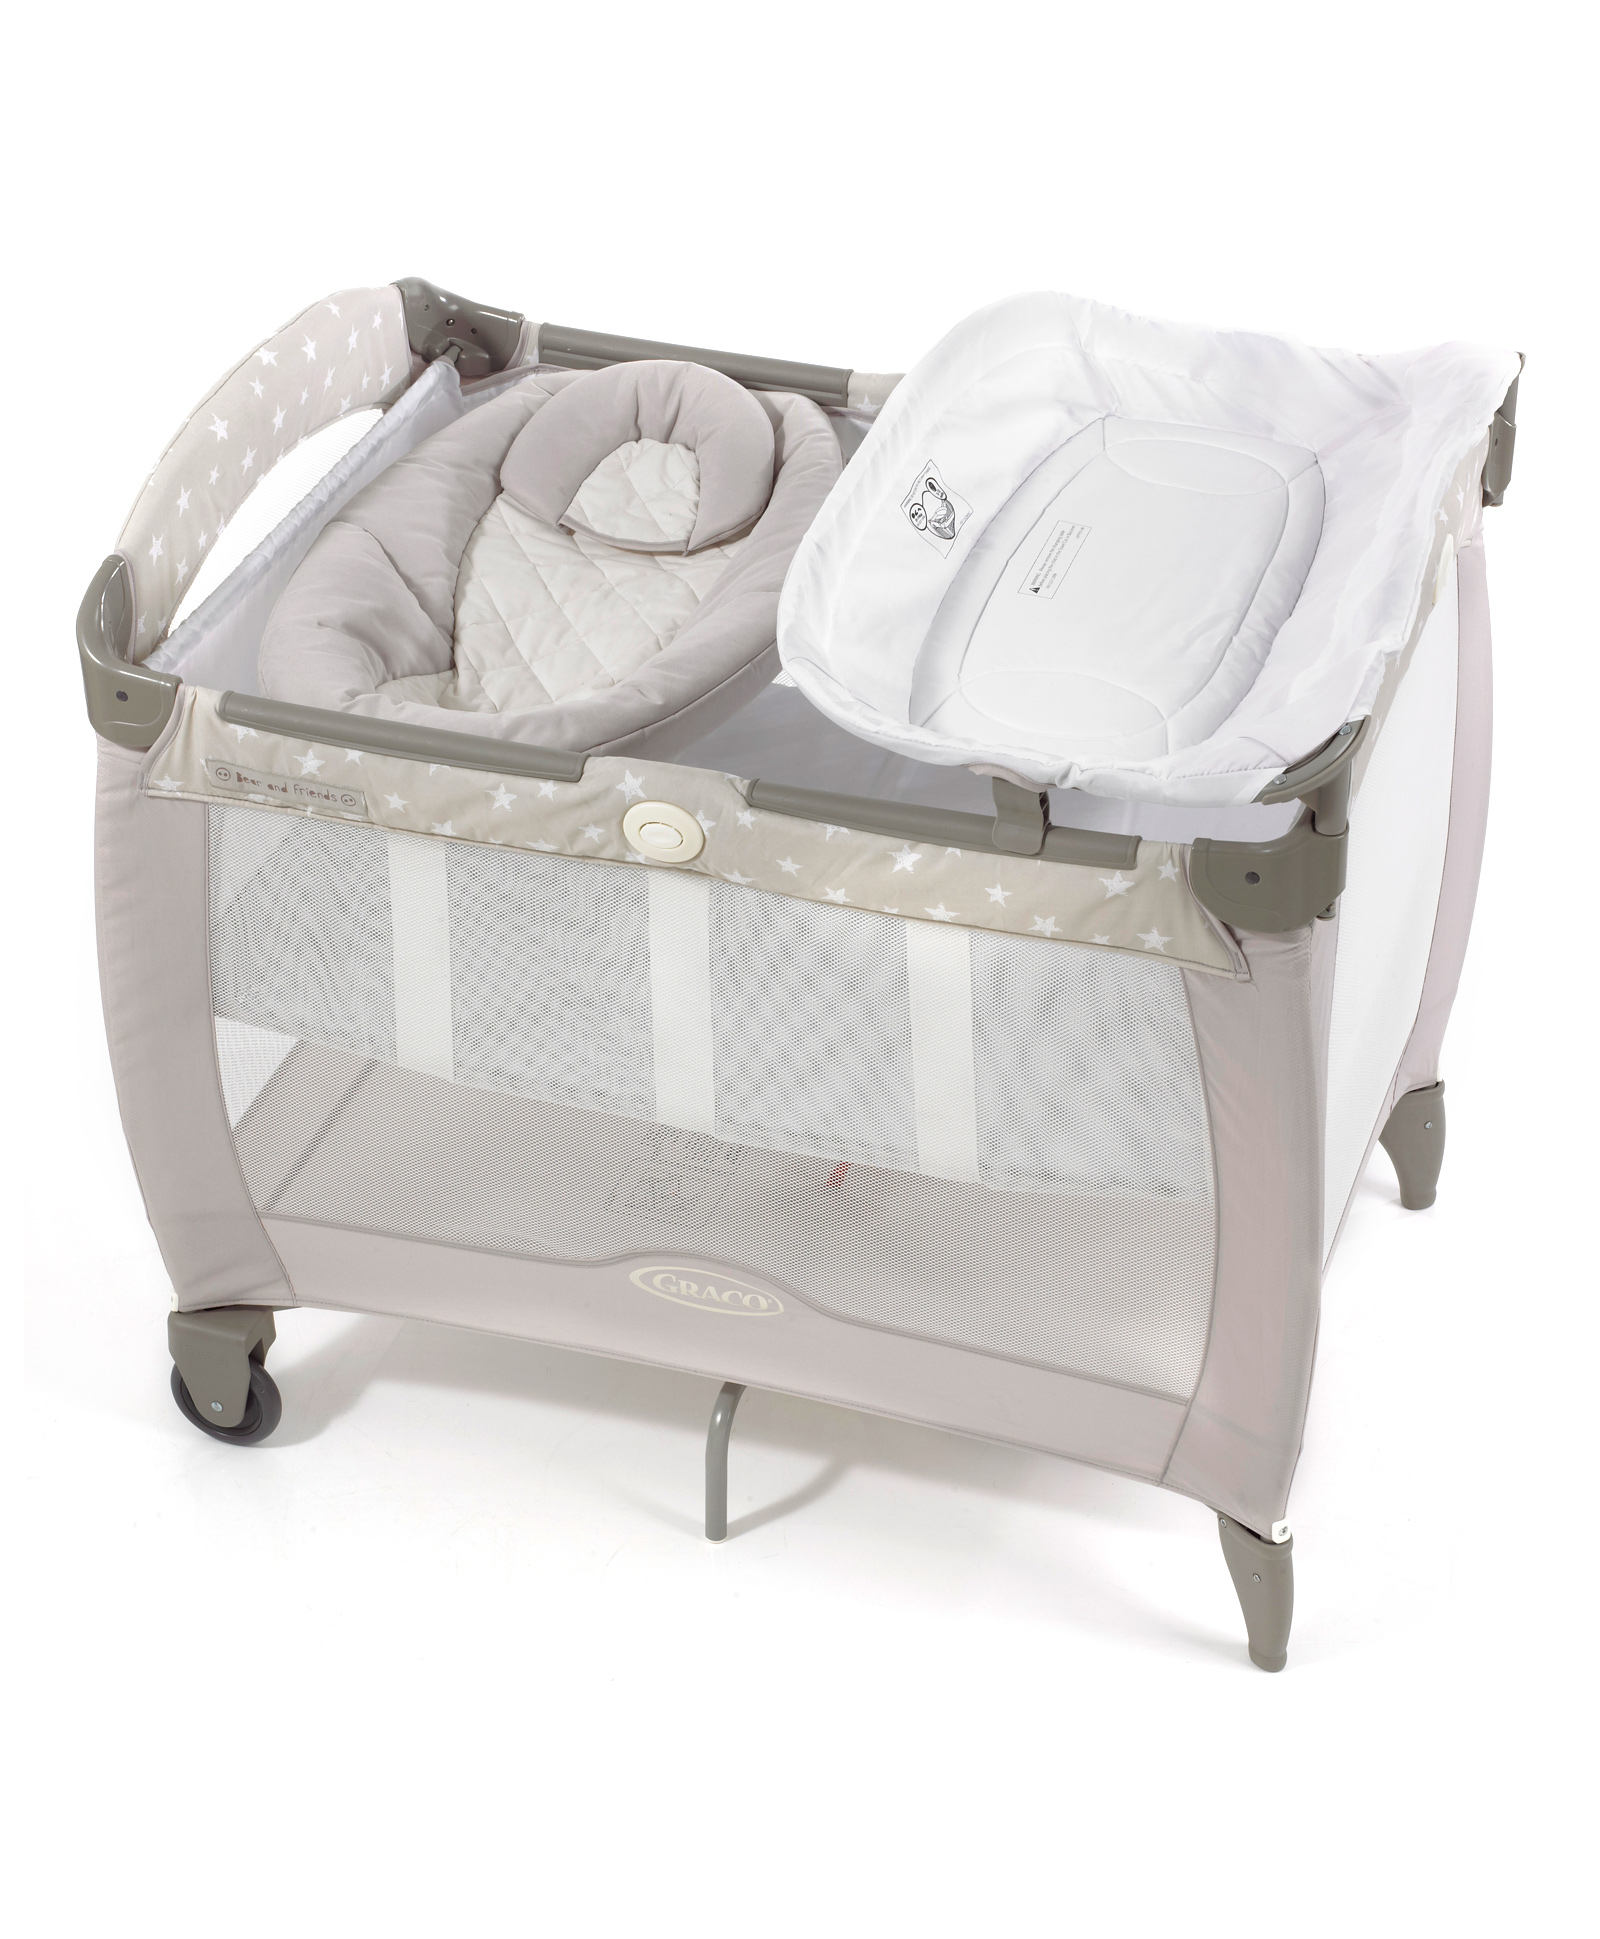 Baby Cradle Graco Graco Pack N Play Contour Electra Bassinet With Napper Bear